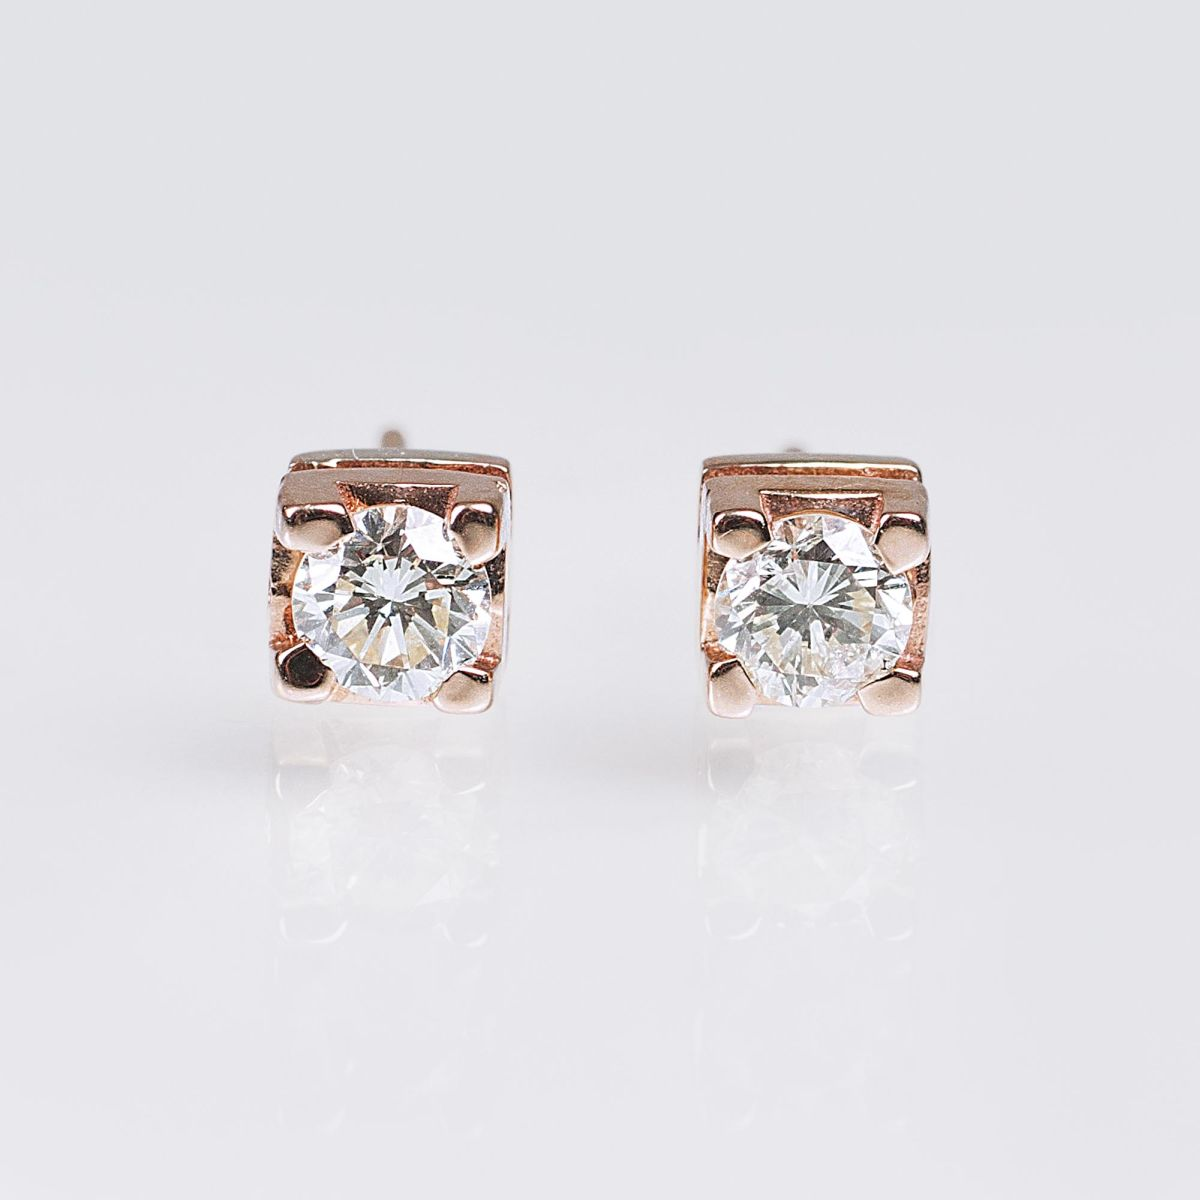 A Pair of Solitaire Diamond Earstuds